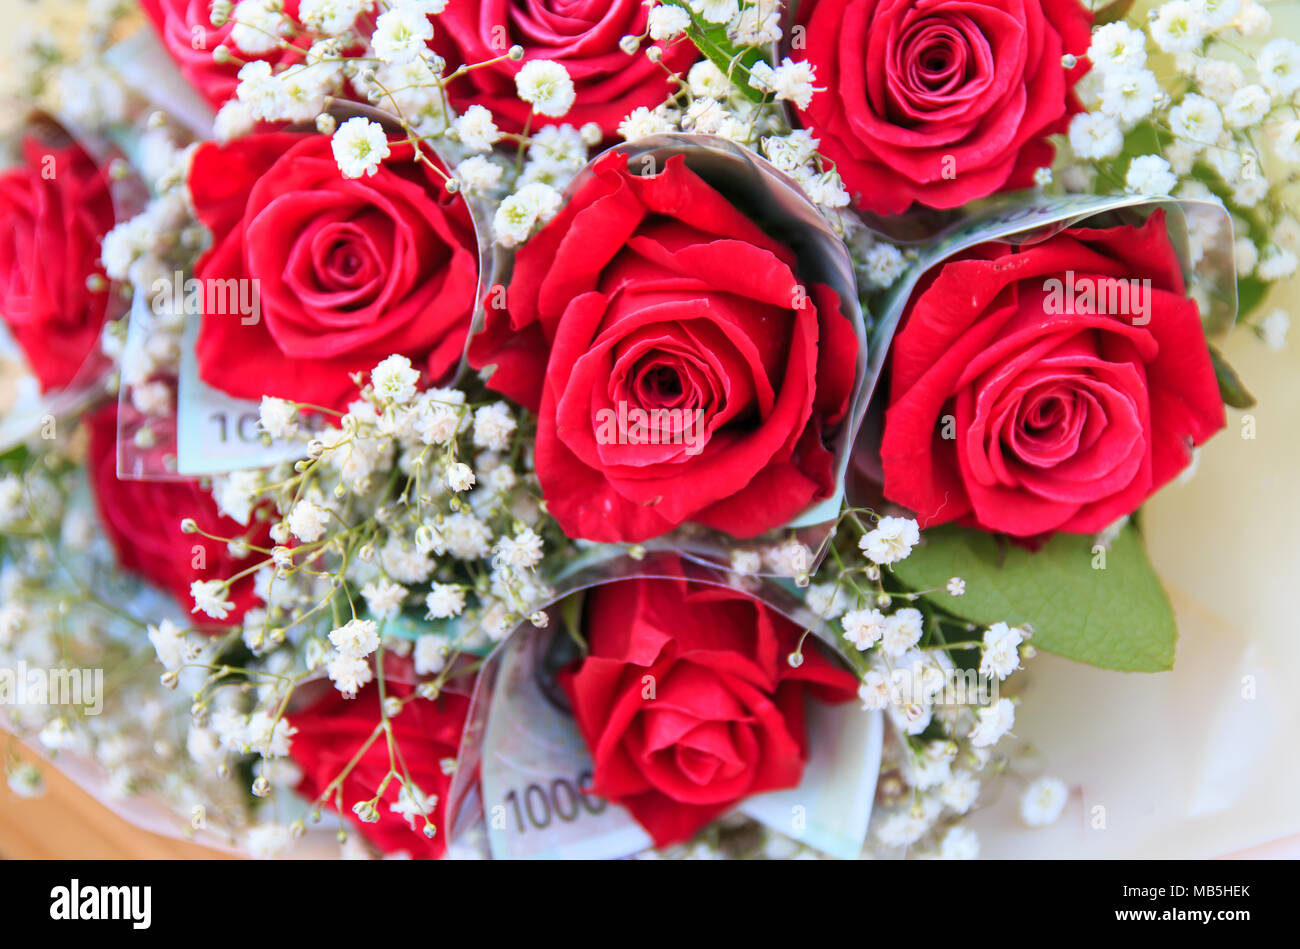 Red rose bouquet with money wrapping rose stock photo 178988395 alamy red rose bouquet with money wrapping rose izmirmasajfo